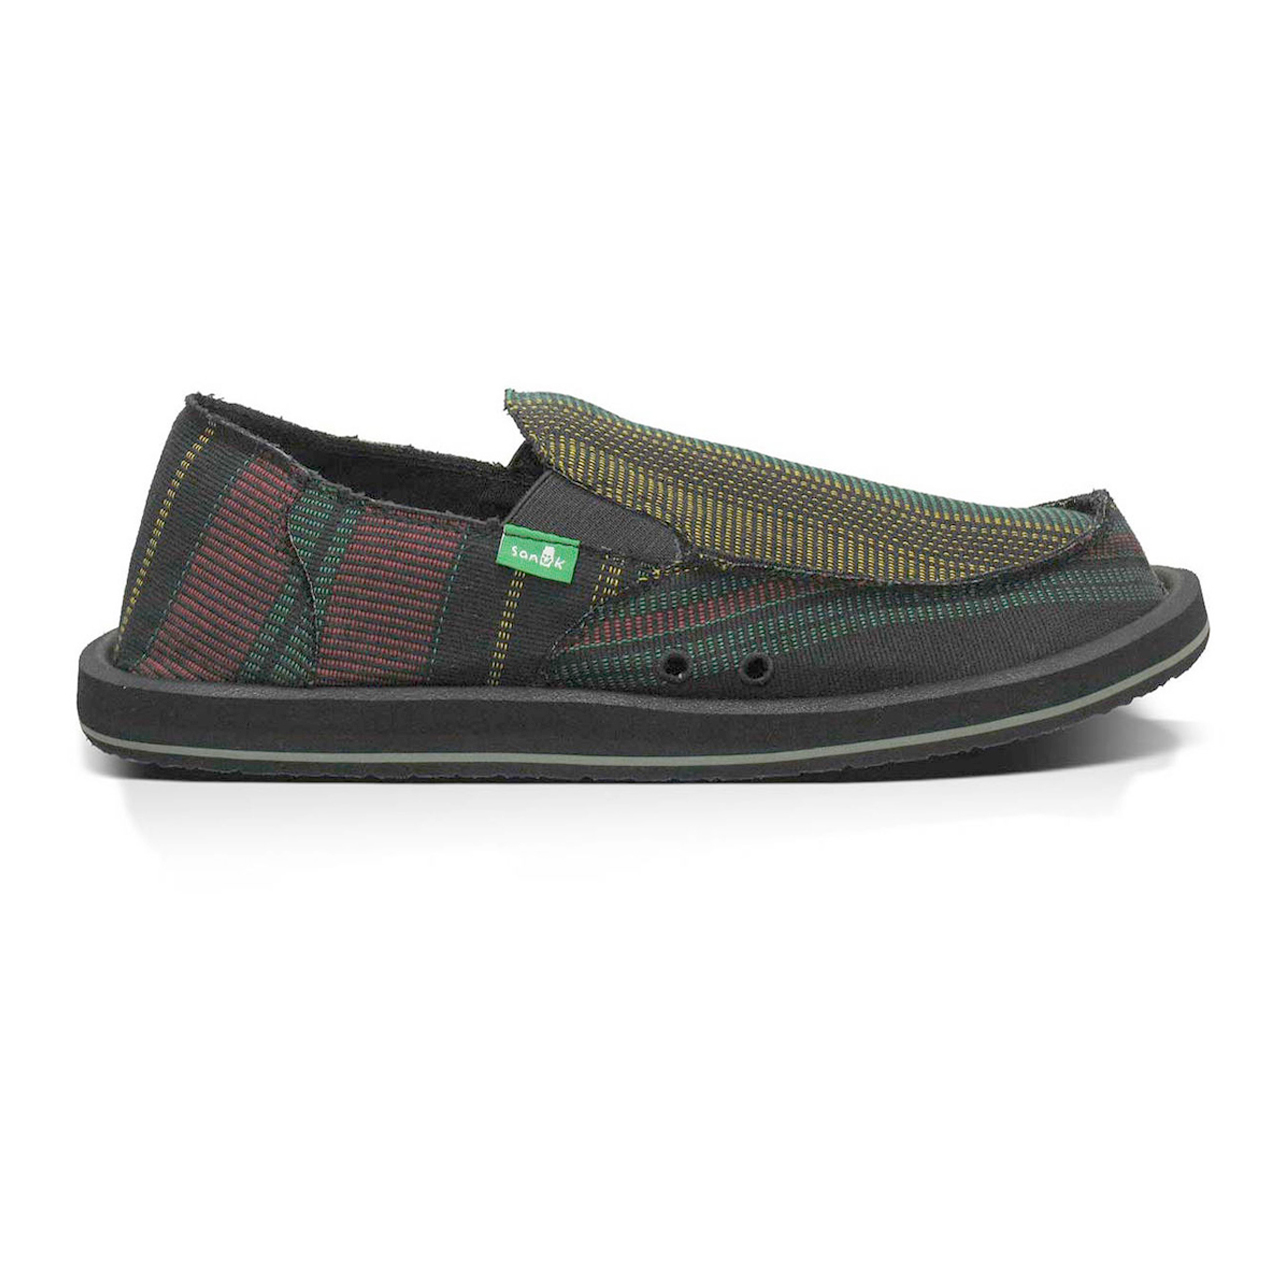 Sanuk Donny Sandals Sidewalk Surfers New in Various Colours and Sizes